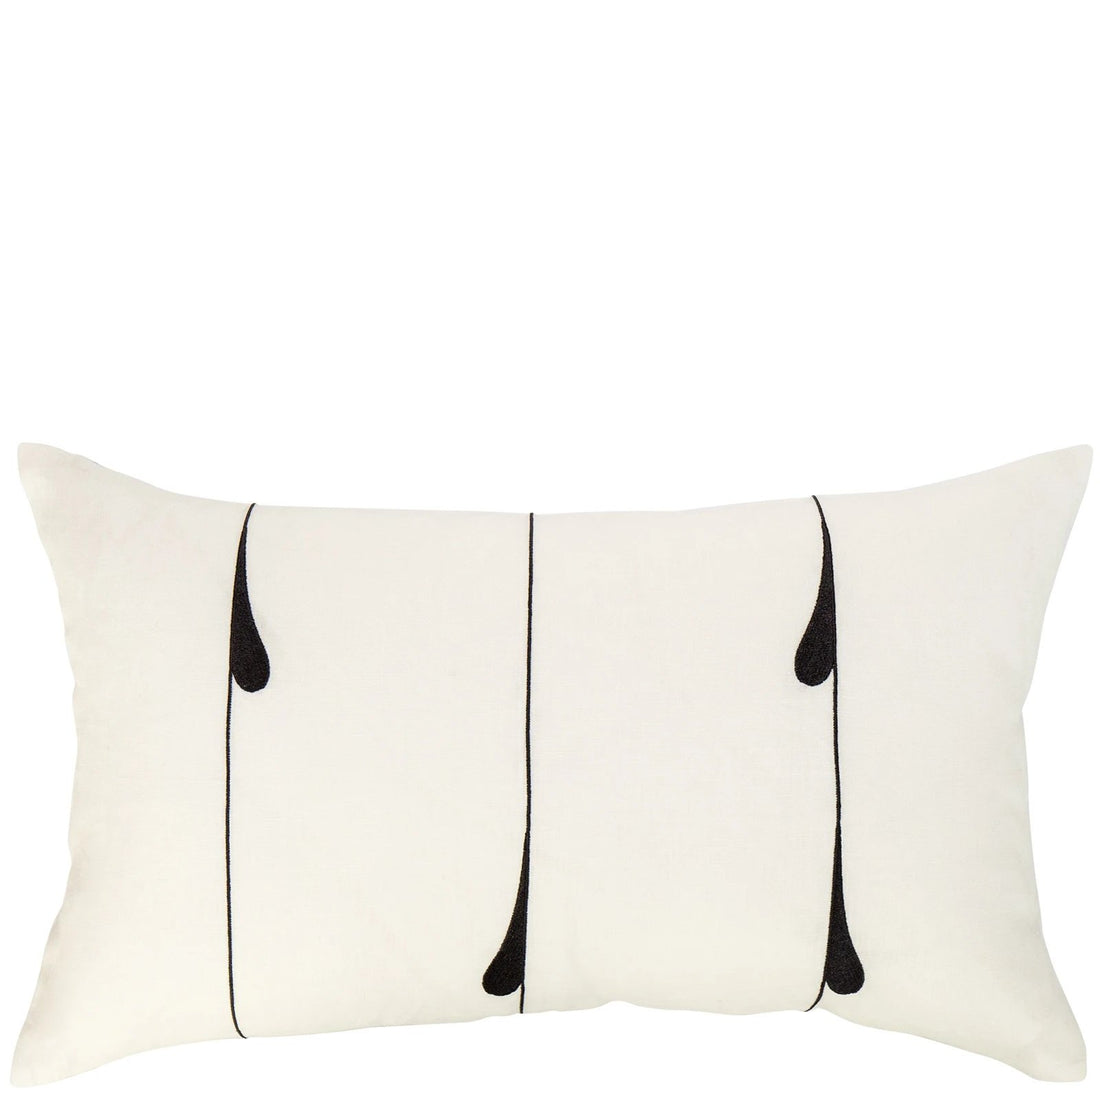 KYLIE CARAVAGGIO Decorative Kidney Cushion